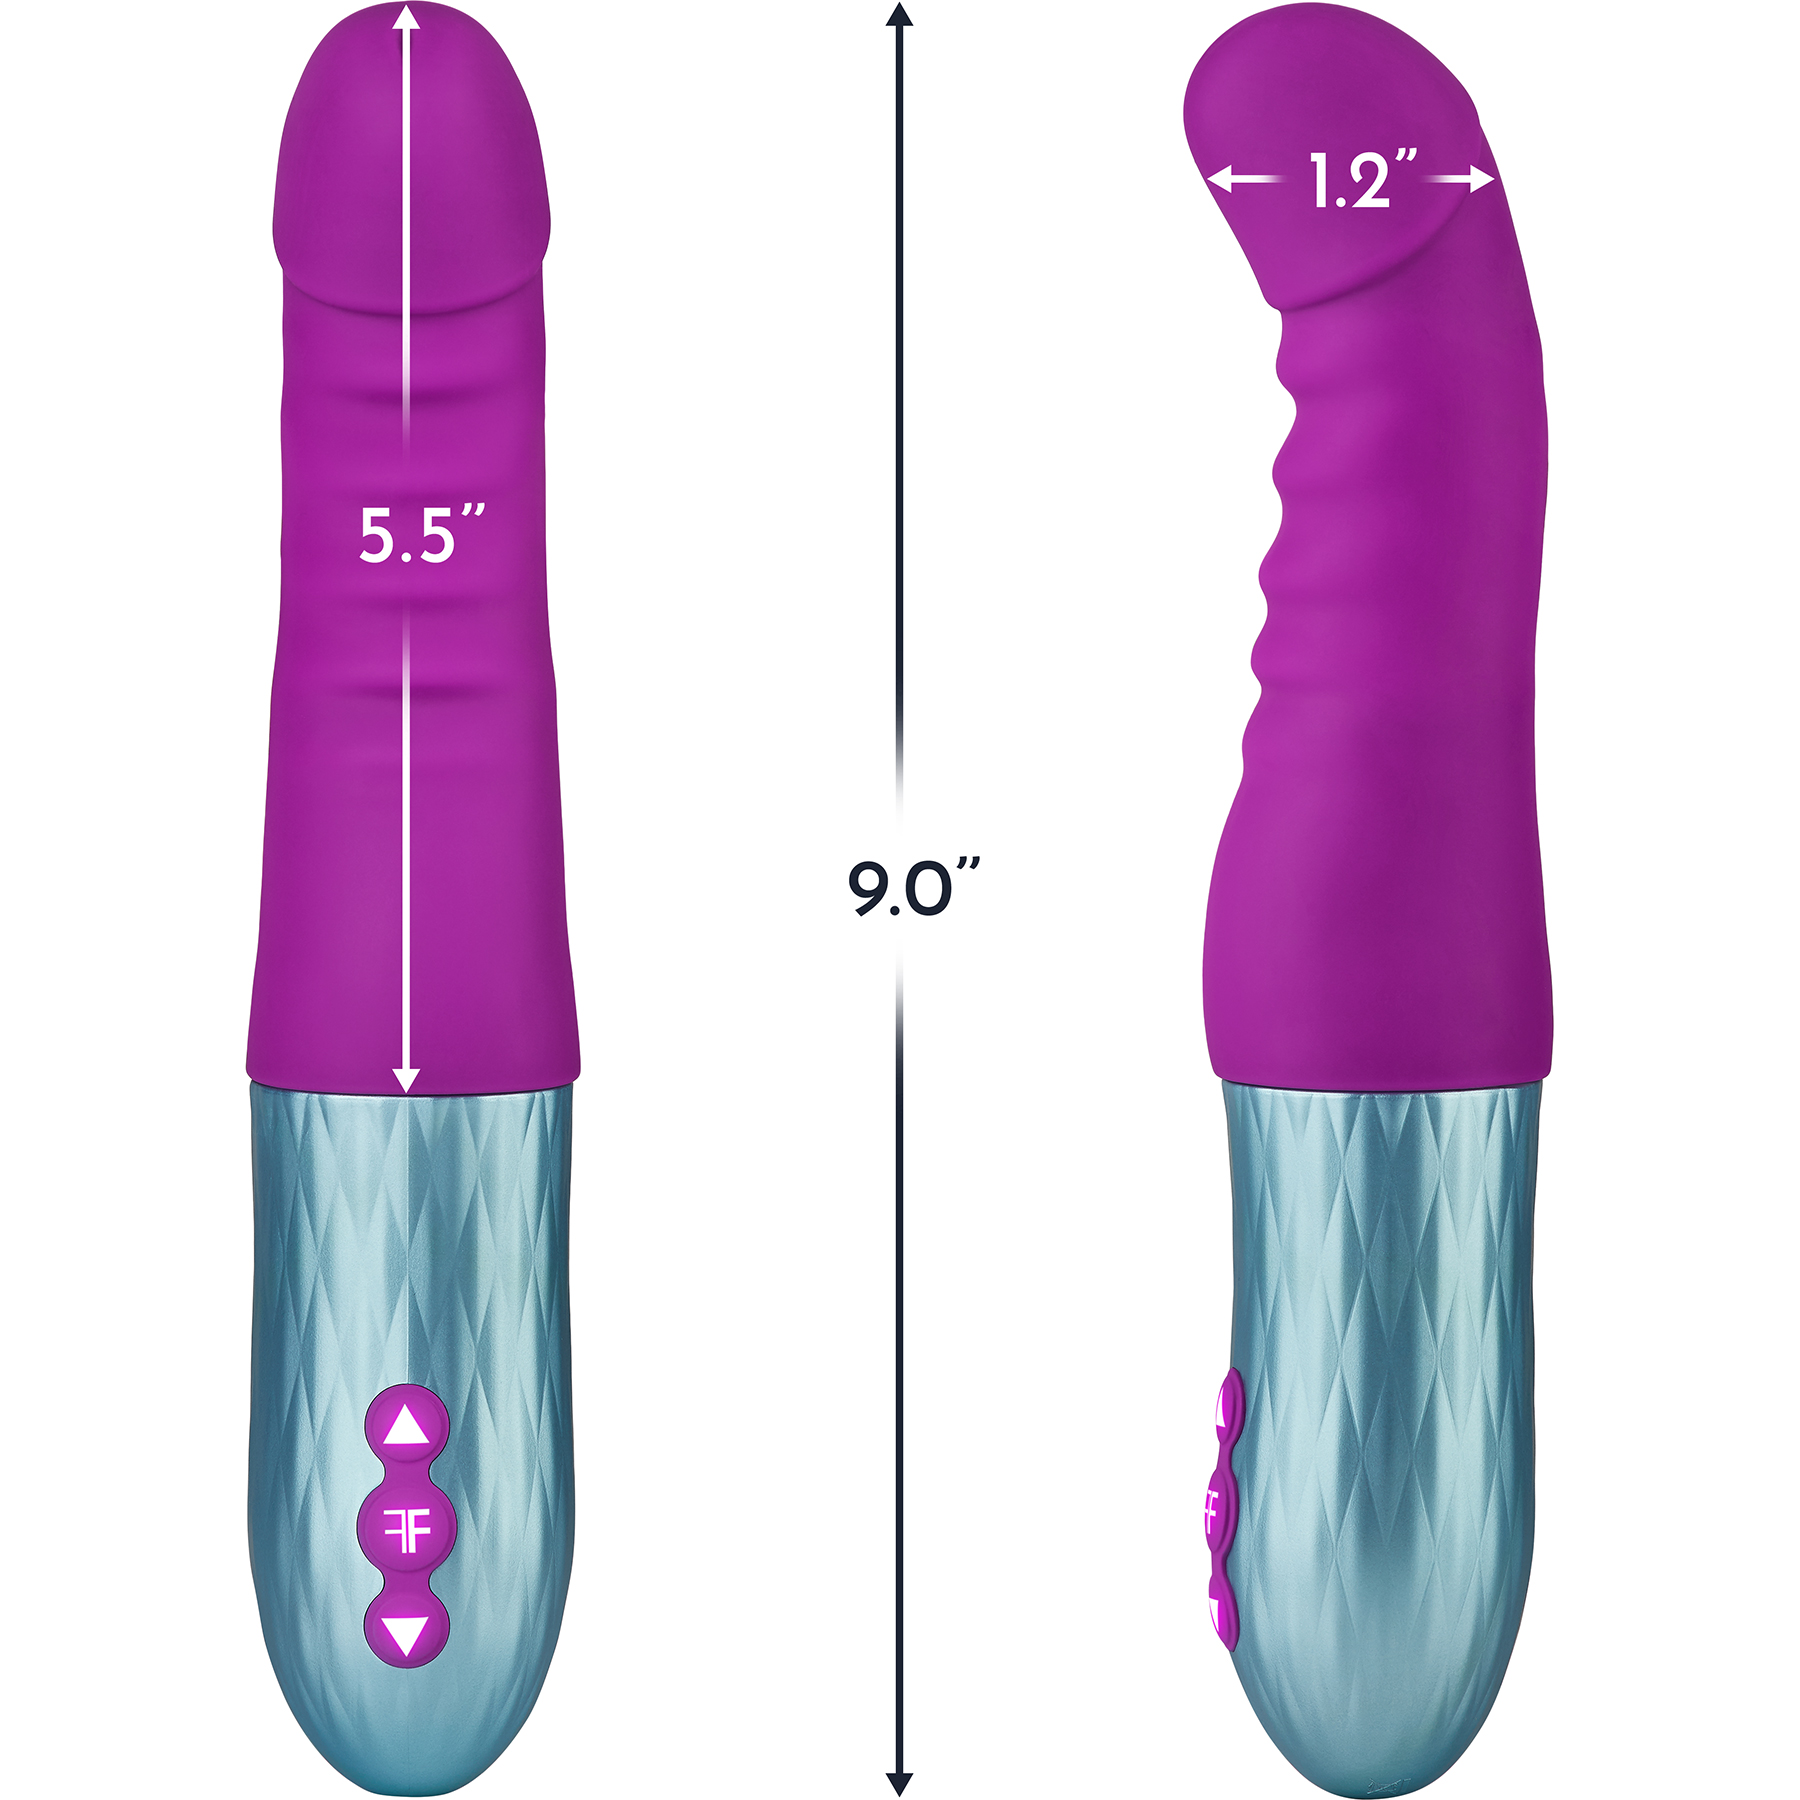 Cadenza Rechargeable Silicone Thrusting Dildo By FemmeFunn - Measurements